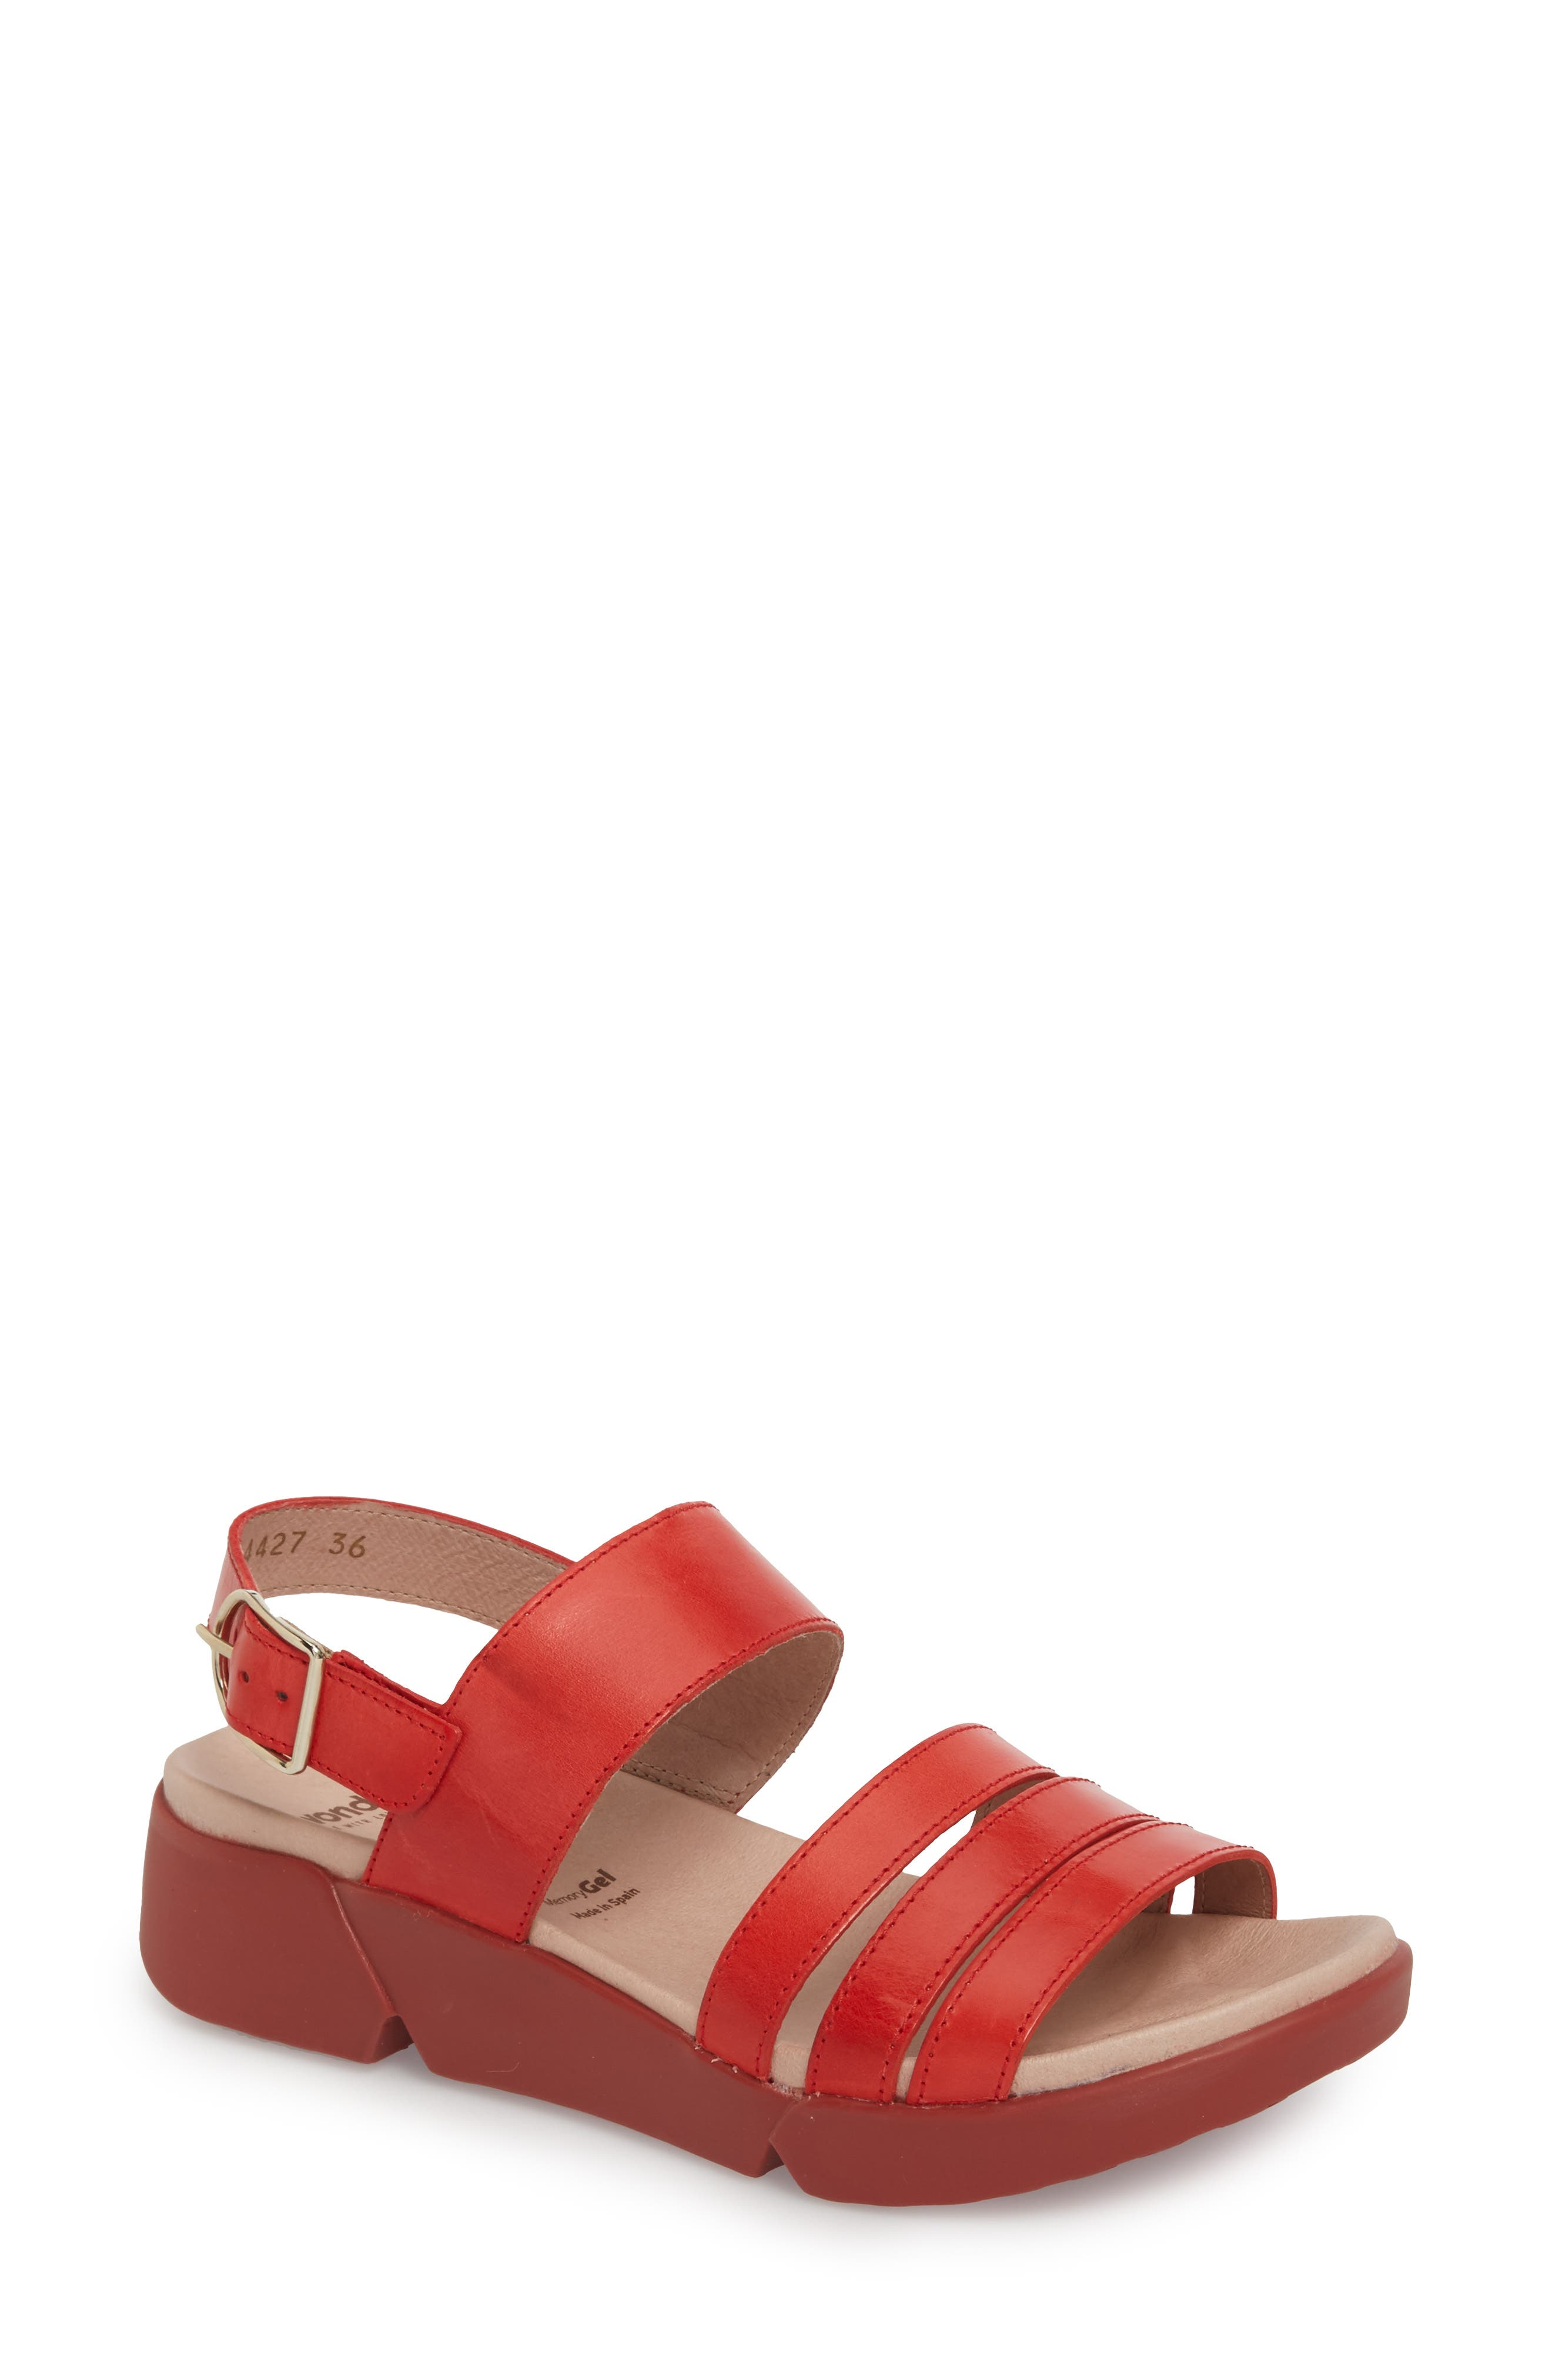 WONDERS A-8004 Sandal in Red Leather